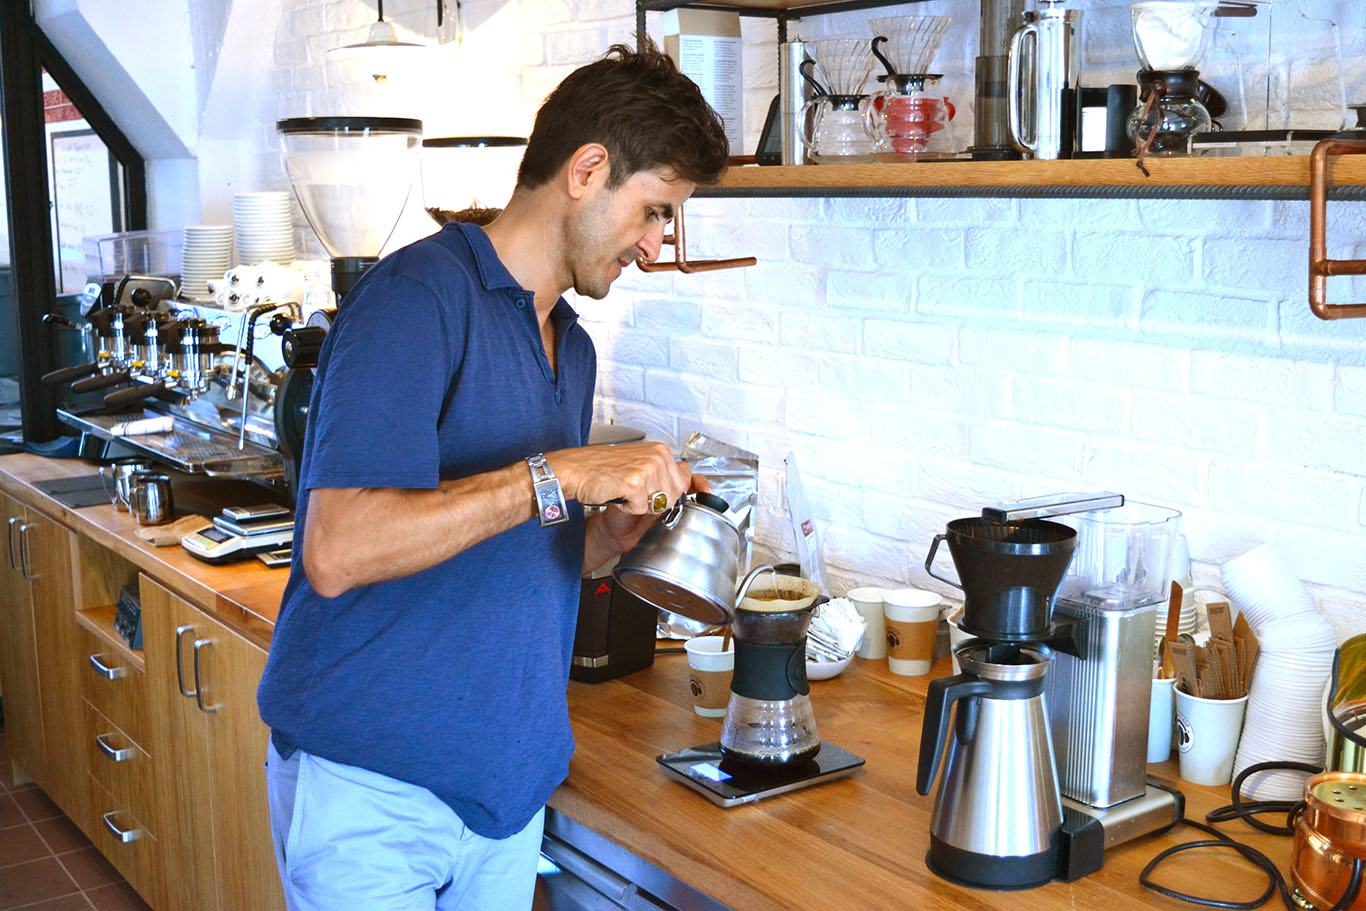 Çağatay Gülabioğlu in the green lab at Kronotrop roaster.